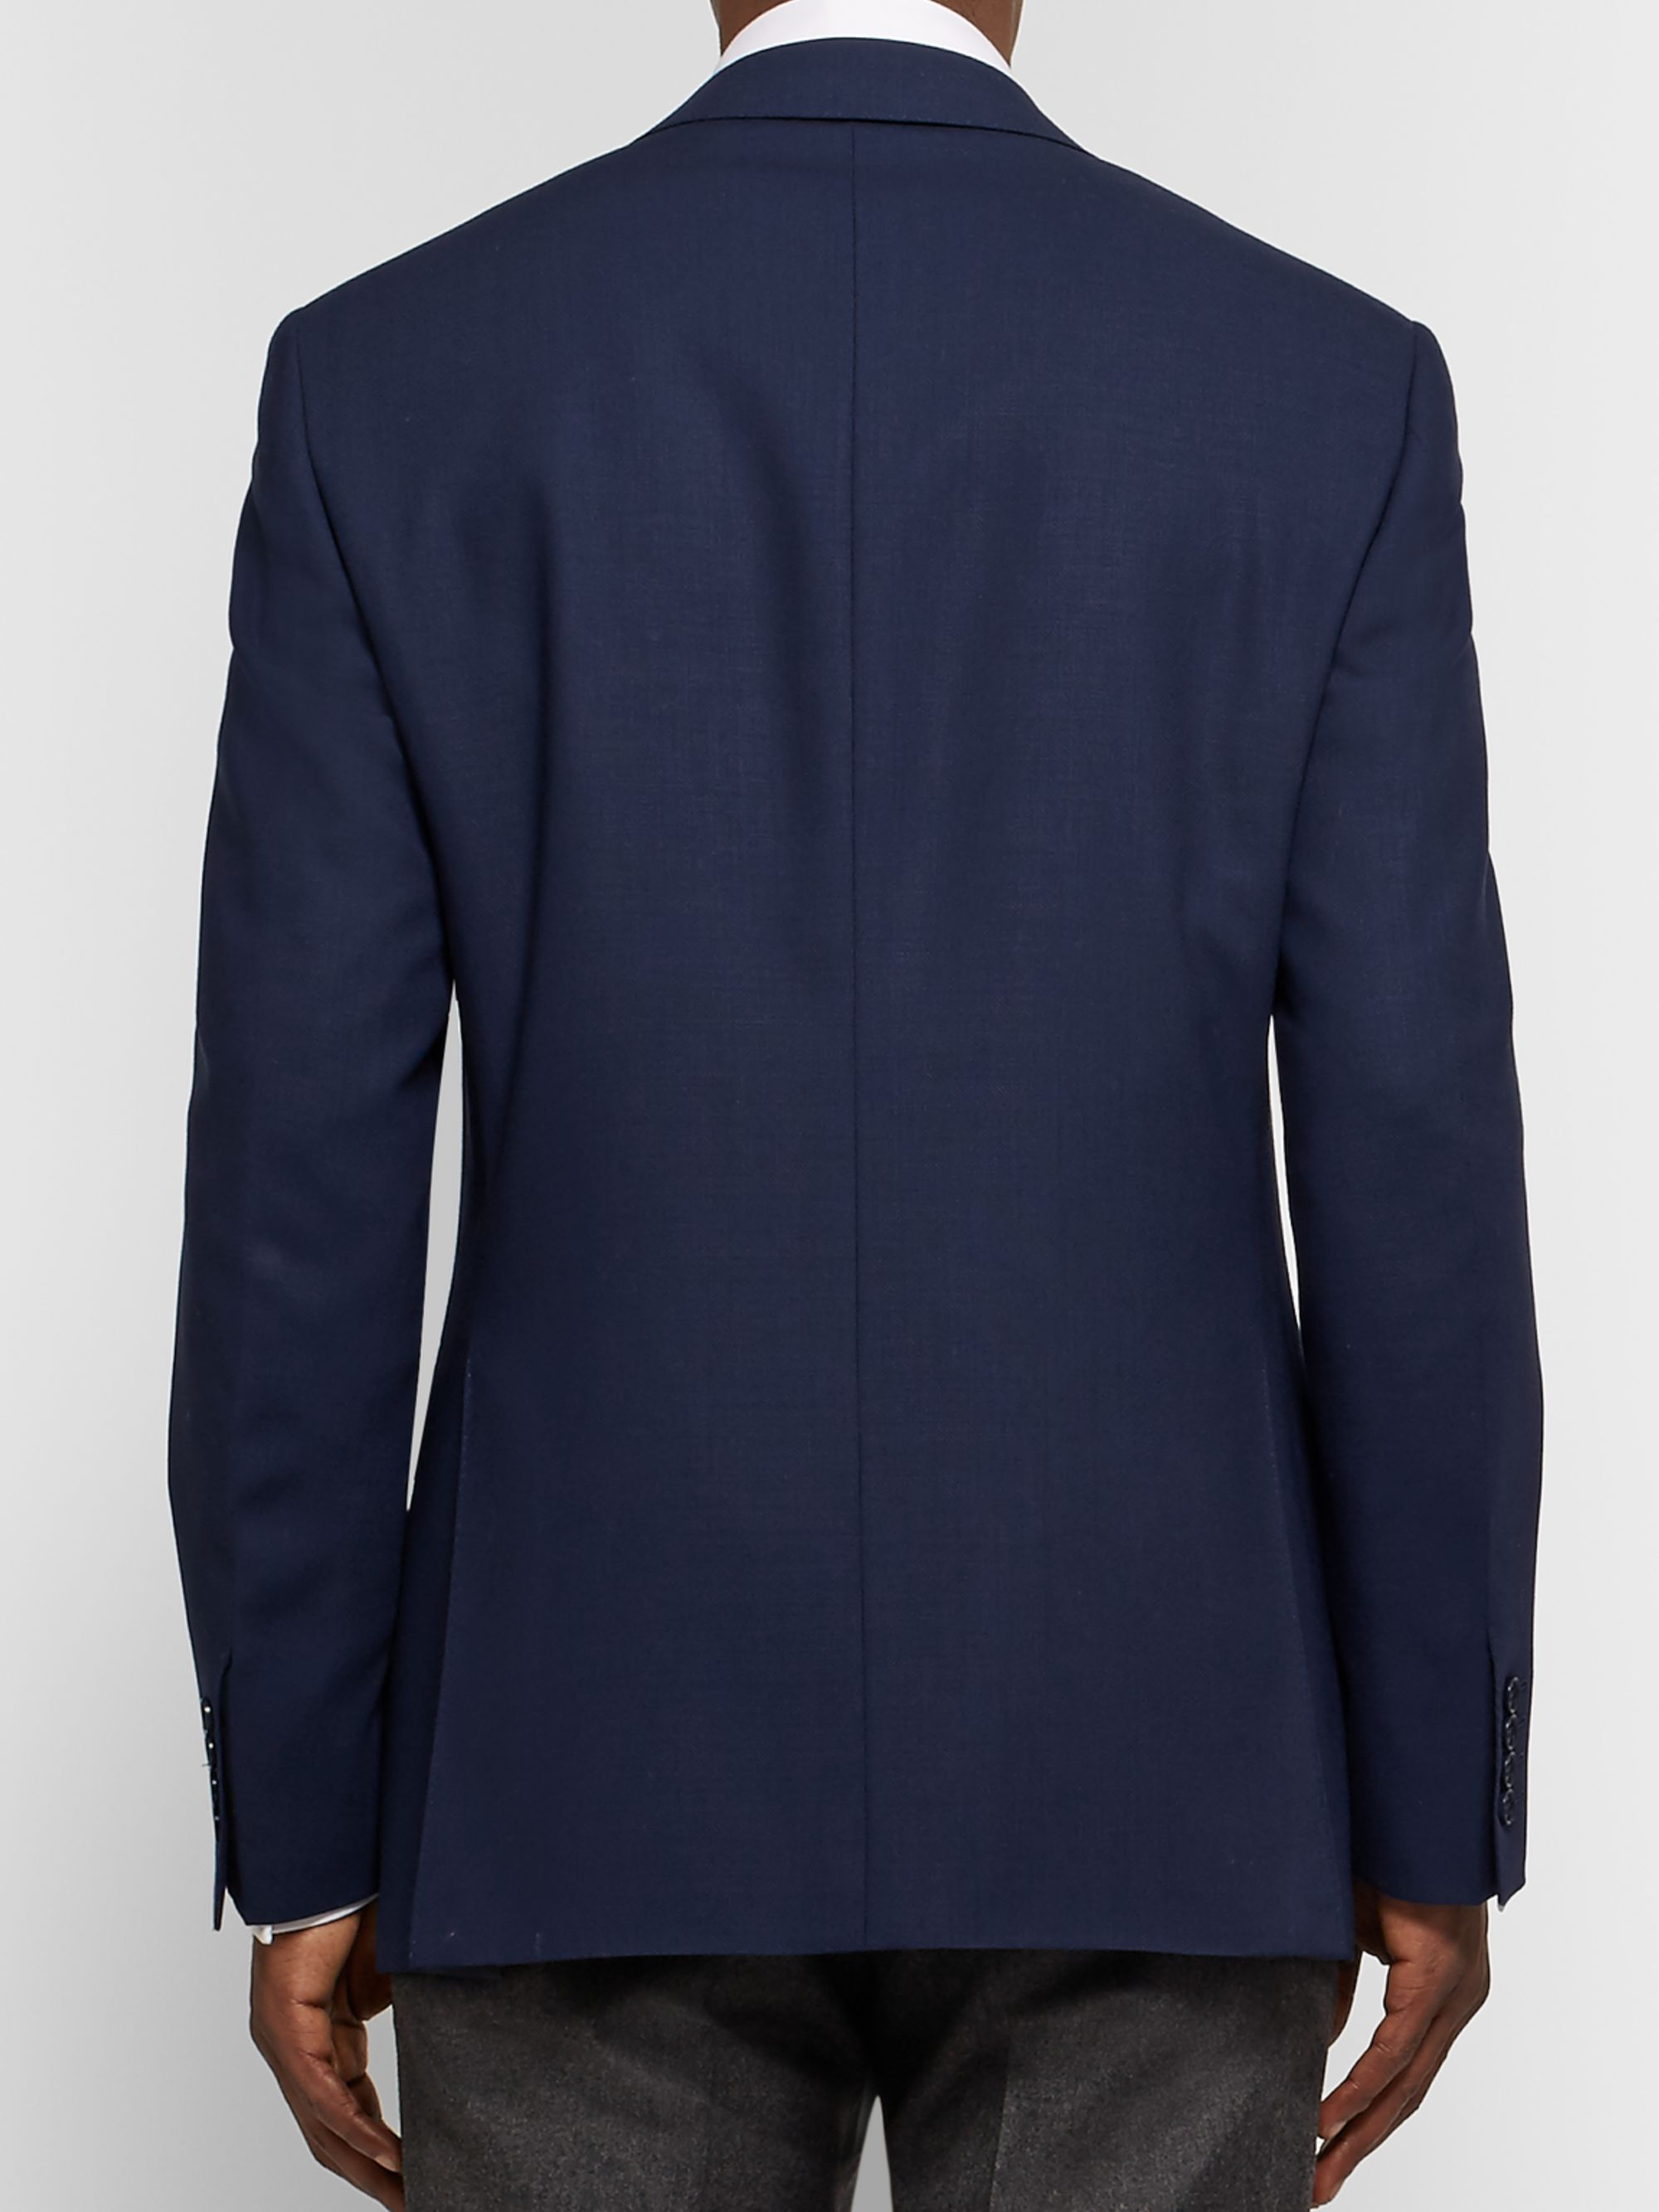 Canali Royal-Blue Slim-Fit Travel Water-Resistant Wool Blazer